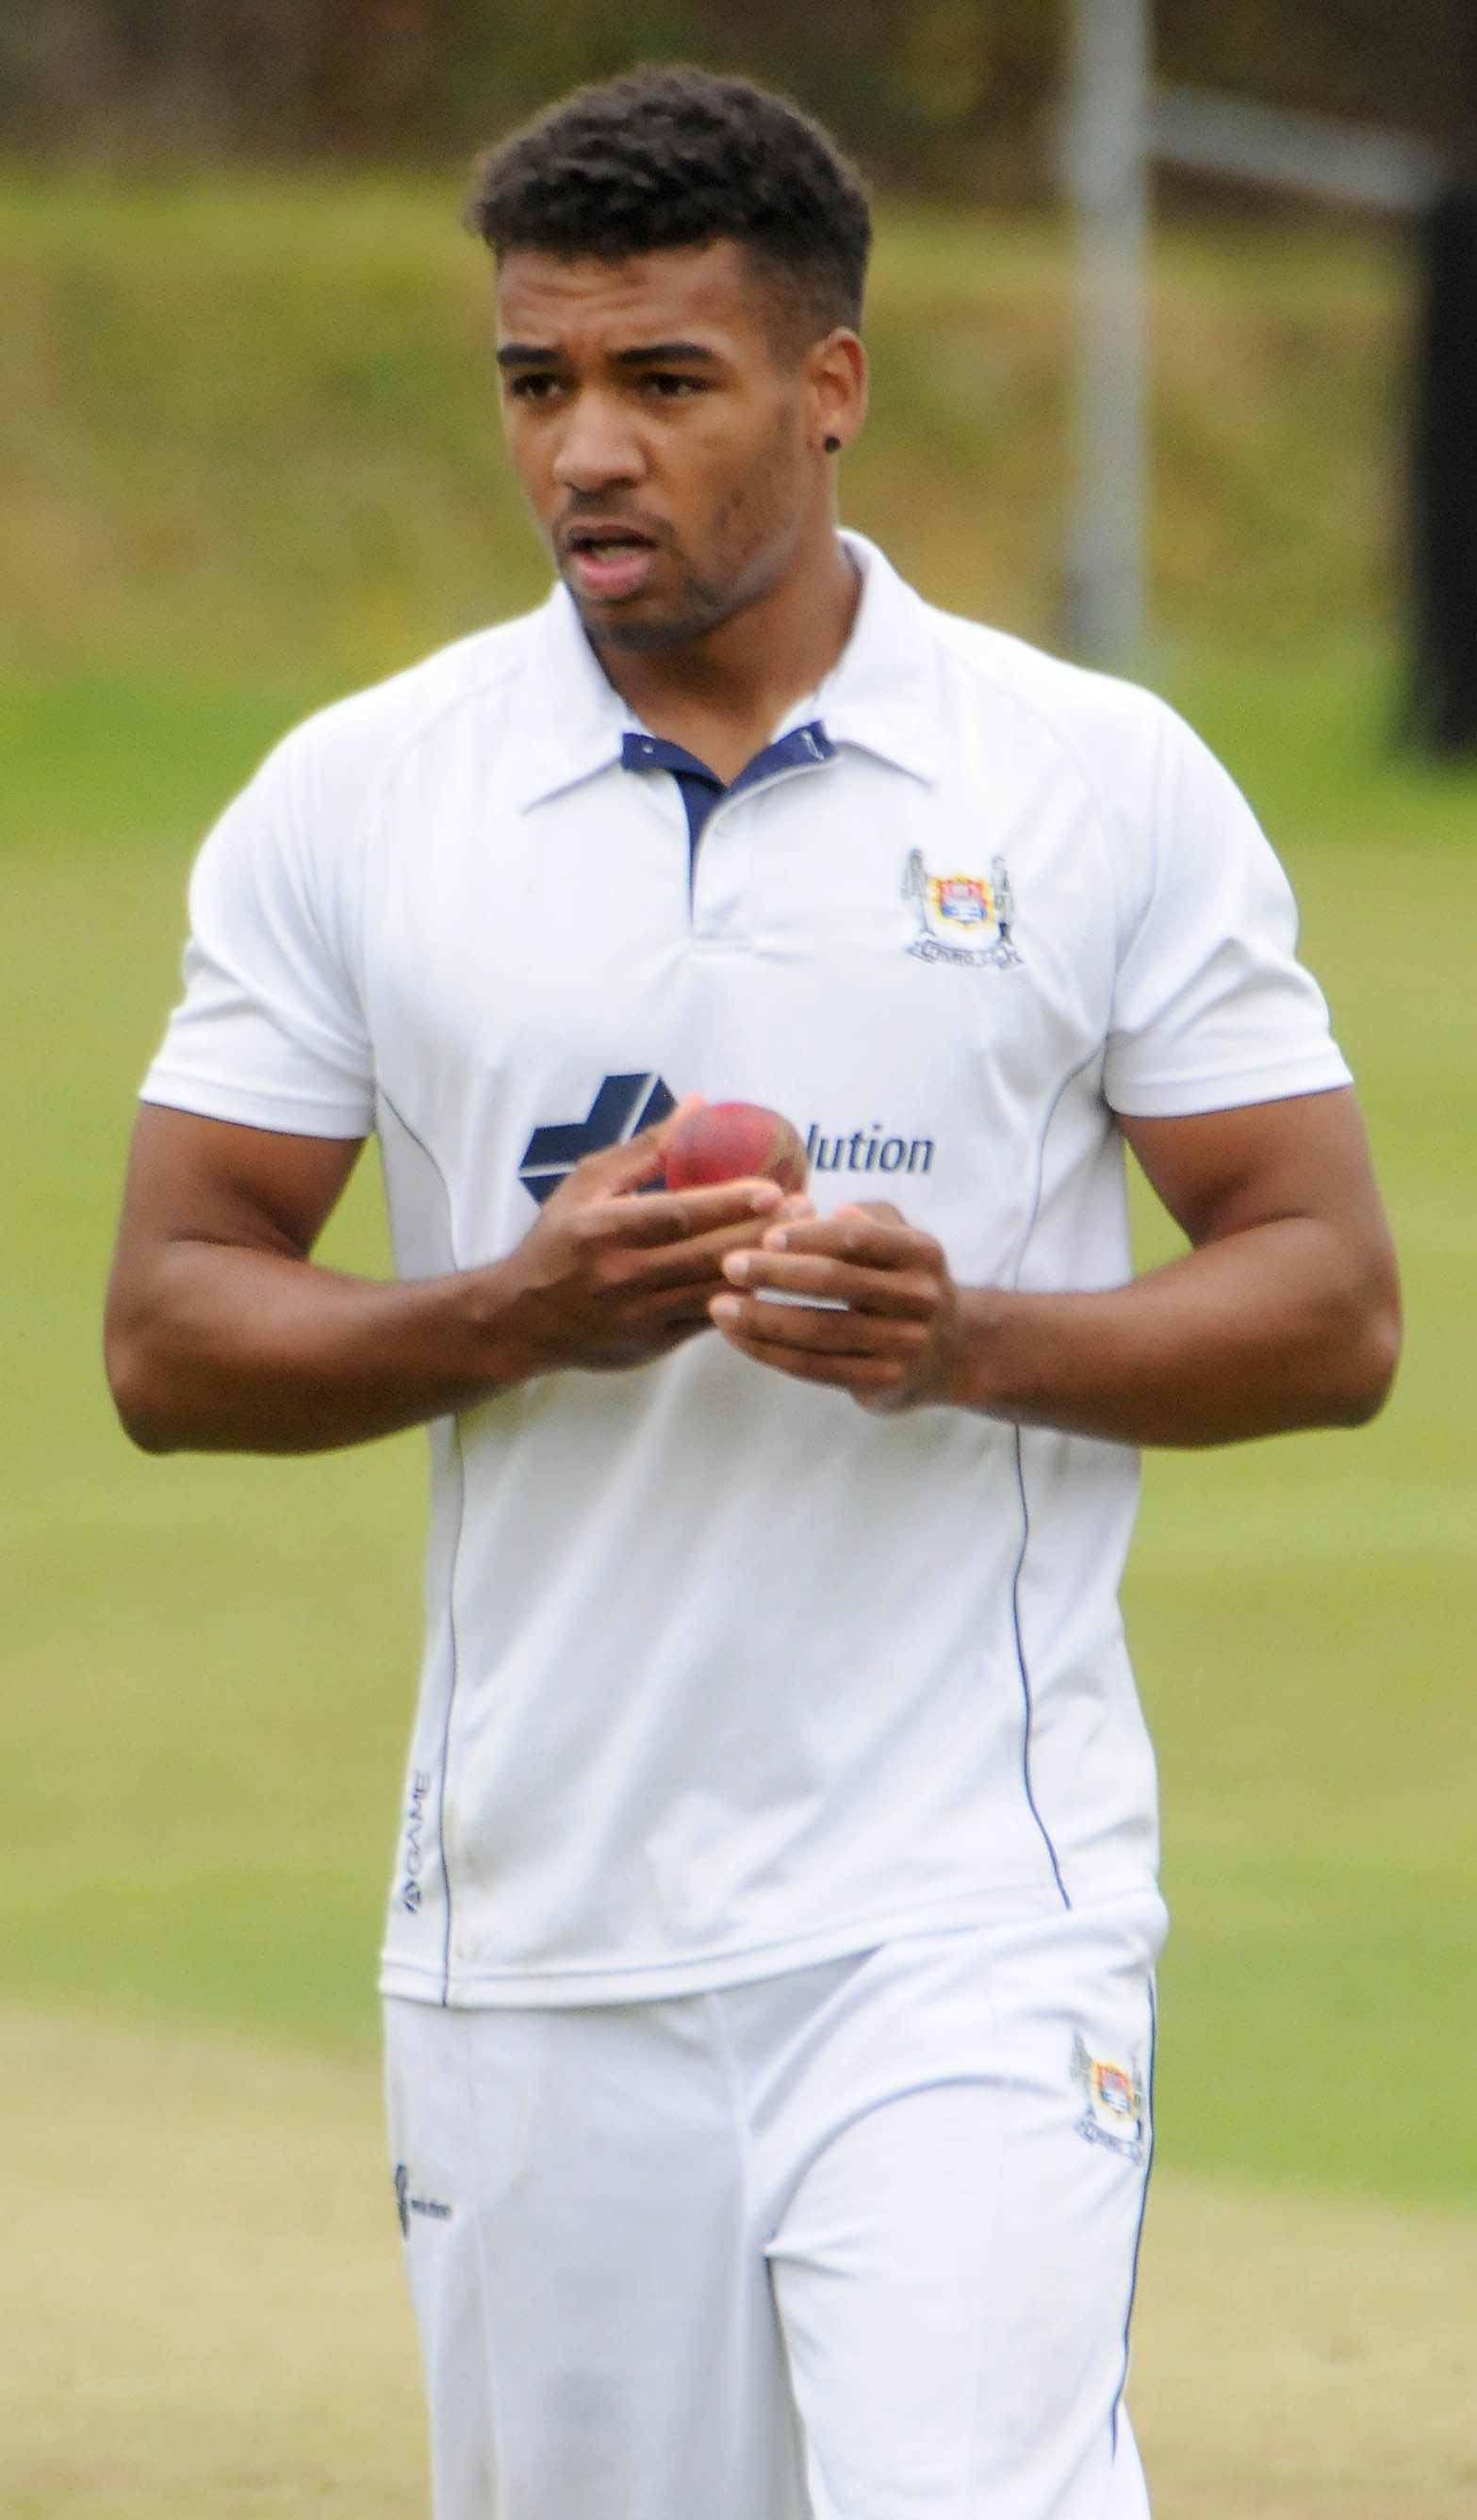 Truro bowler Faiz Fazal (above) claimed five wickets and caught out a sixth as his side beat Werrington by nine wickets on Saturday. Picture by Colin Higgs